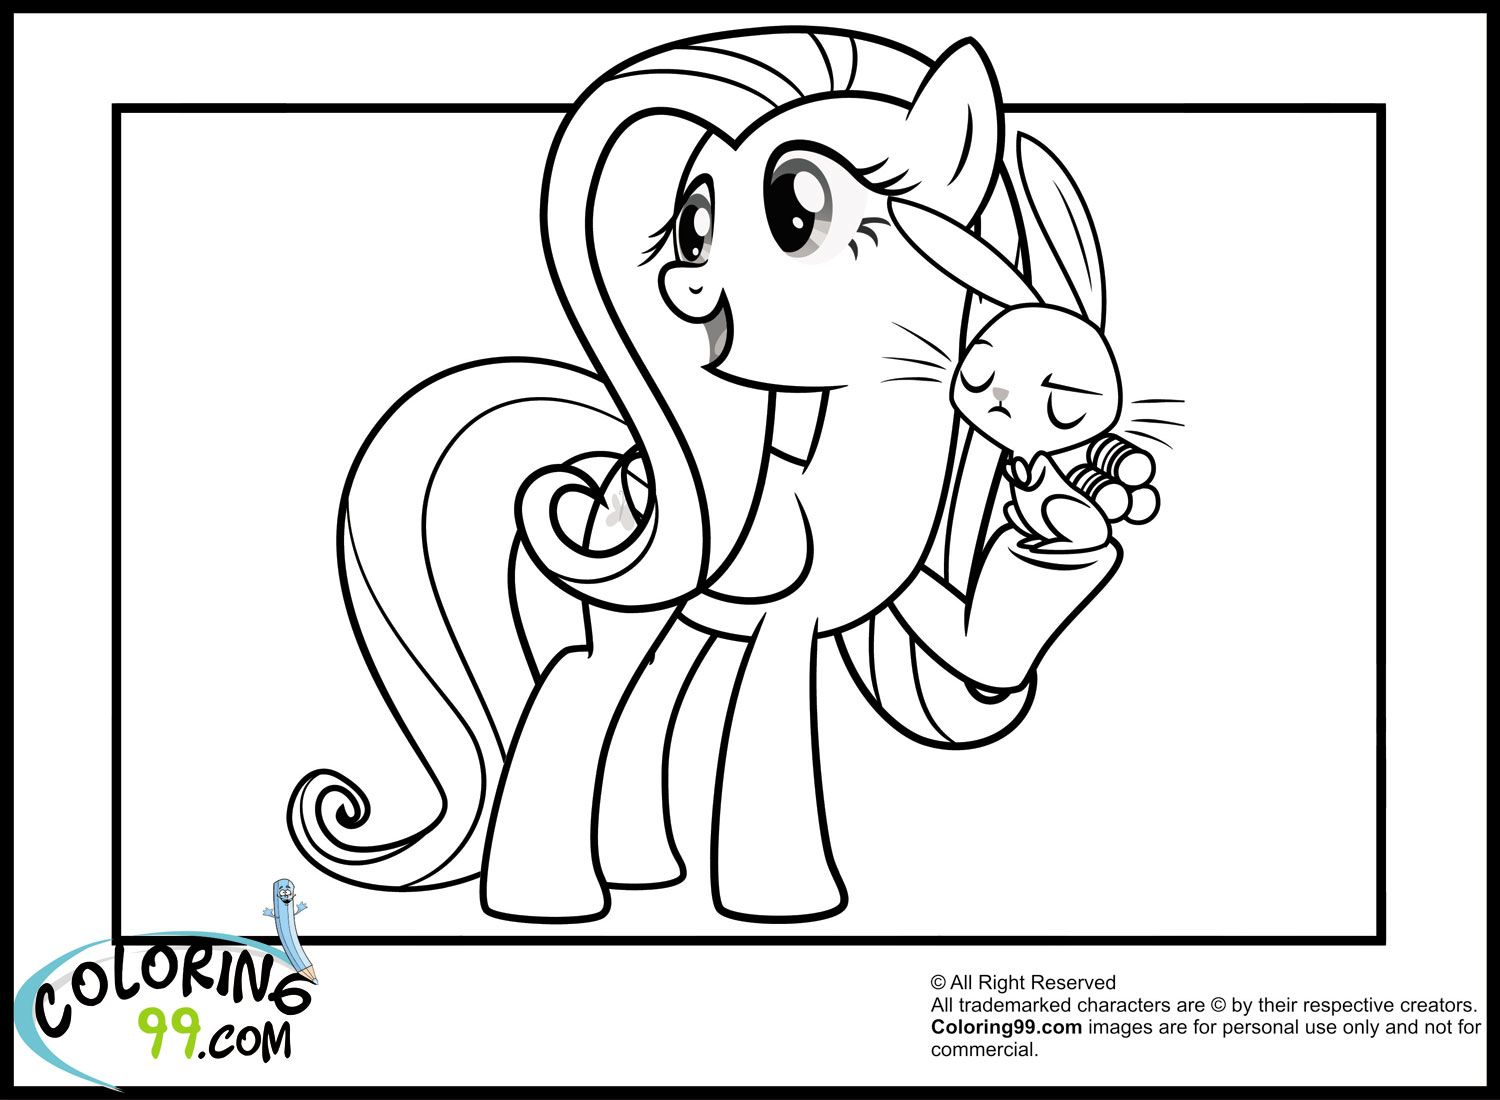 my little pony coloring pages | My Little Pony Fluttershy Coloring ...